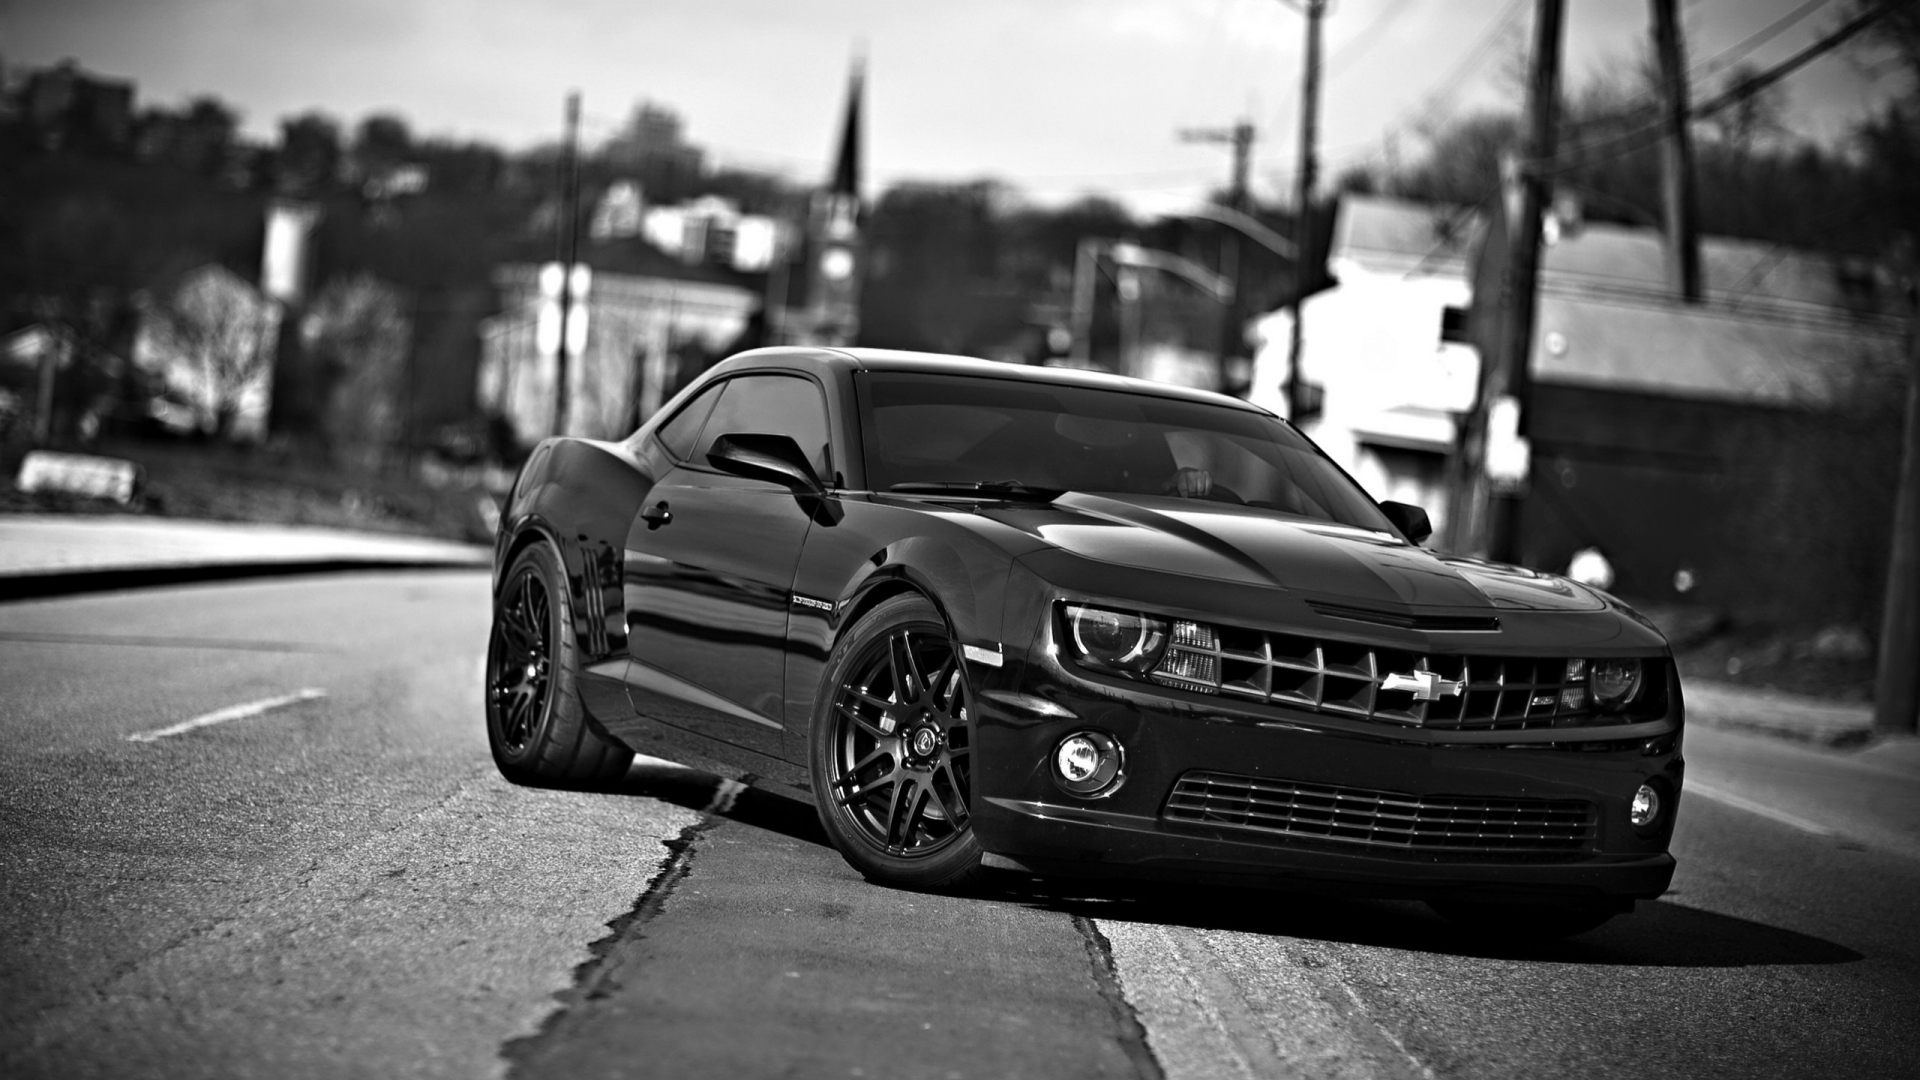 Hd Hintergrundbilder Black White Chevrolet Front View